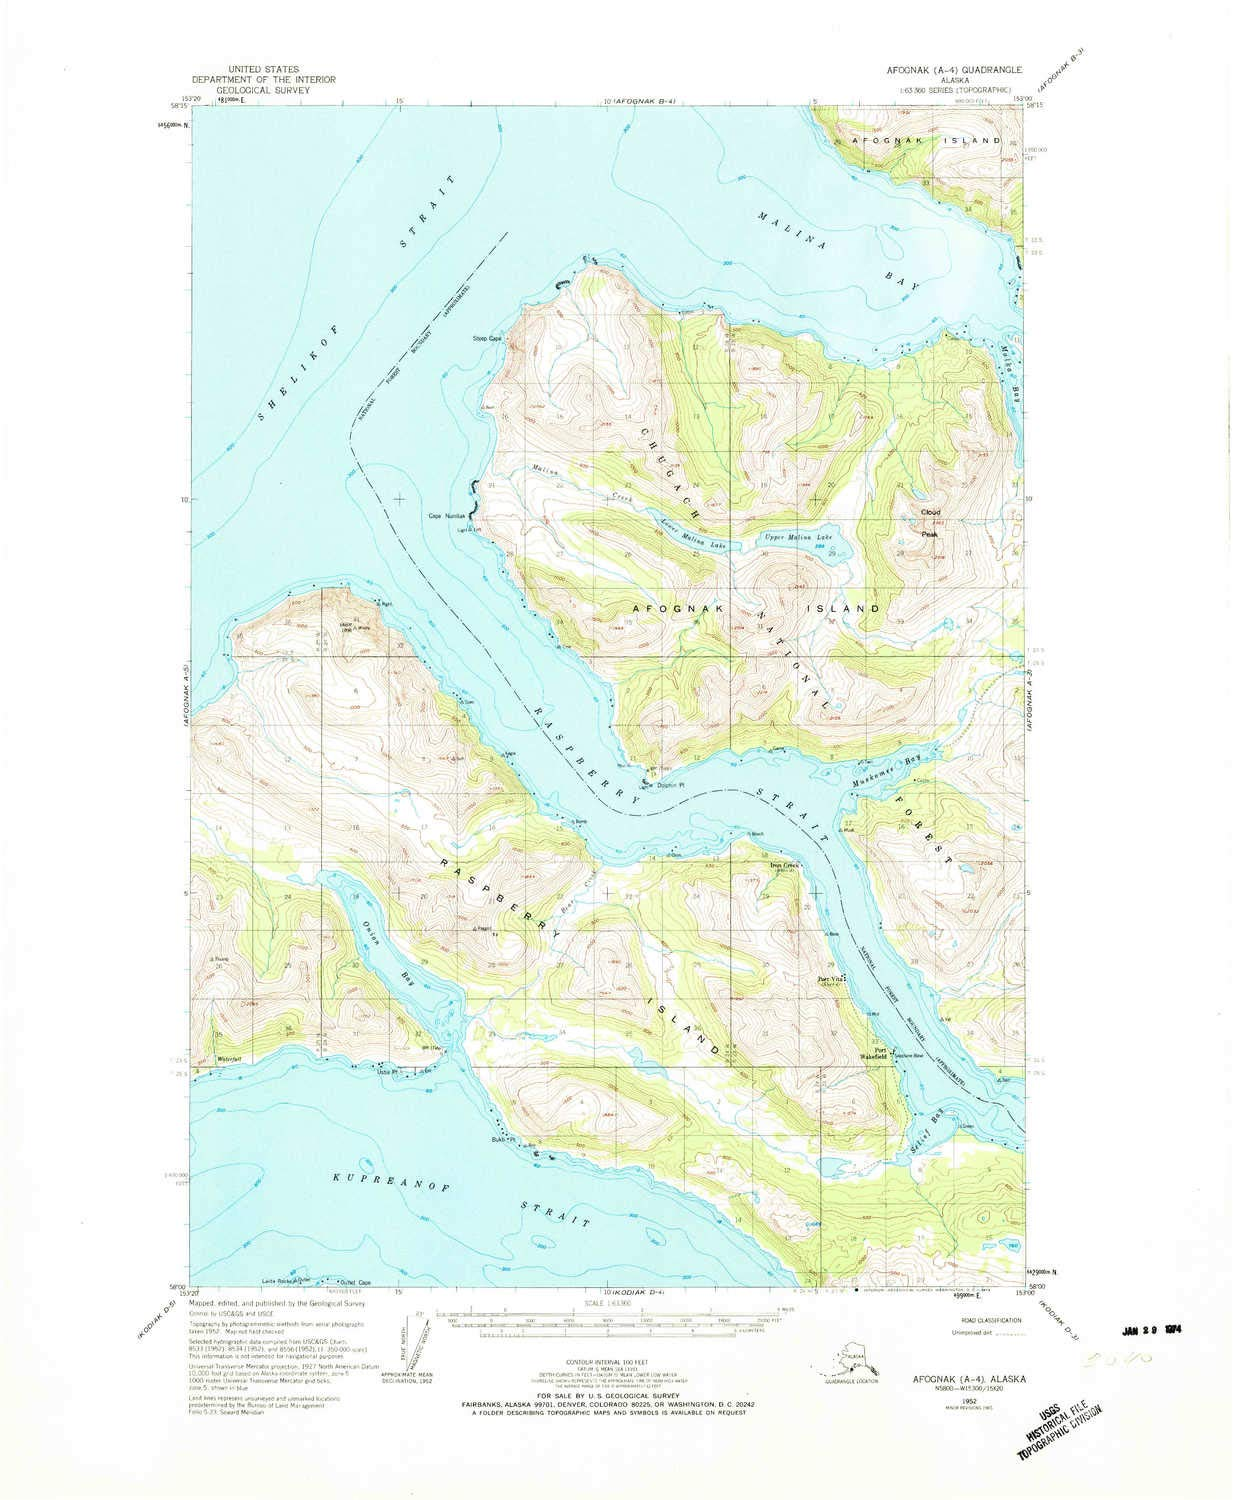 YellowMaps Afognak A 4 AK topo map, 1:63360 Scale, 15 X 15 Minute, Historical, 1952, Updated 1974, 22 x 18.1 in - Polypropylene by YellowMaps